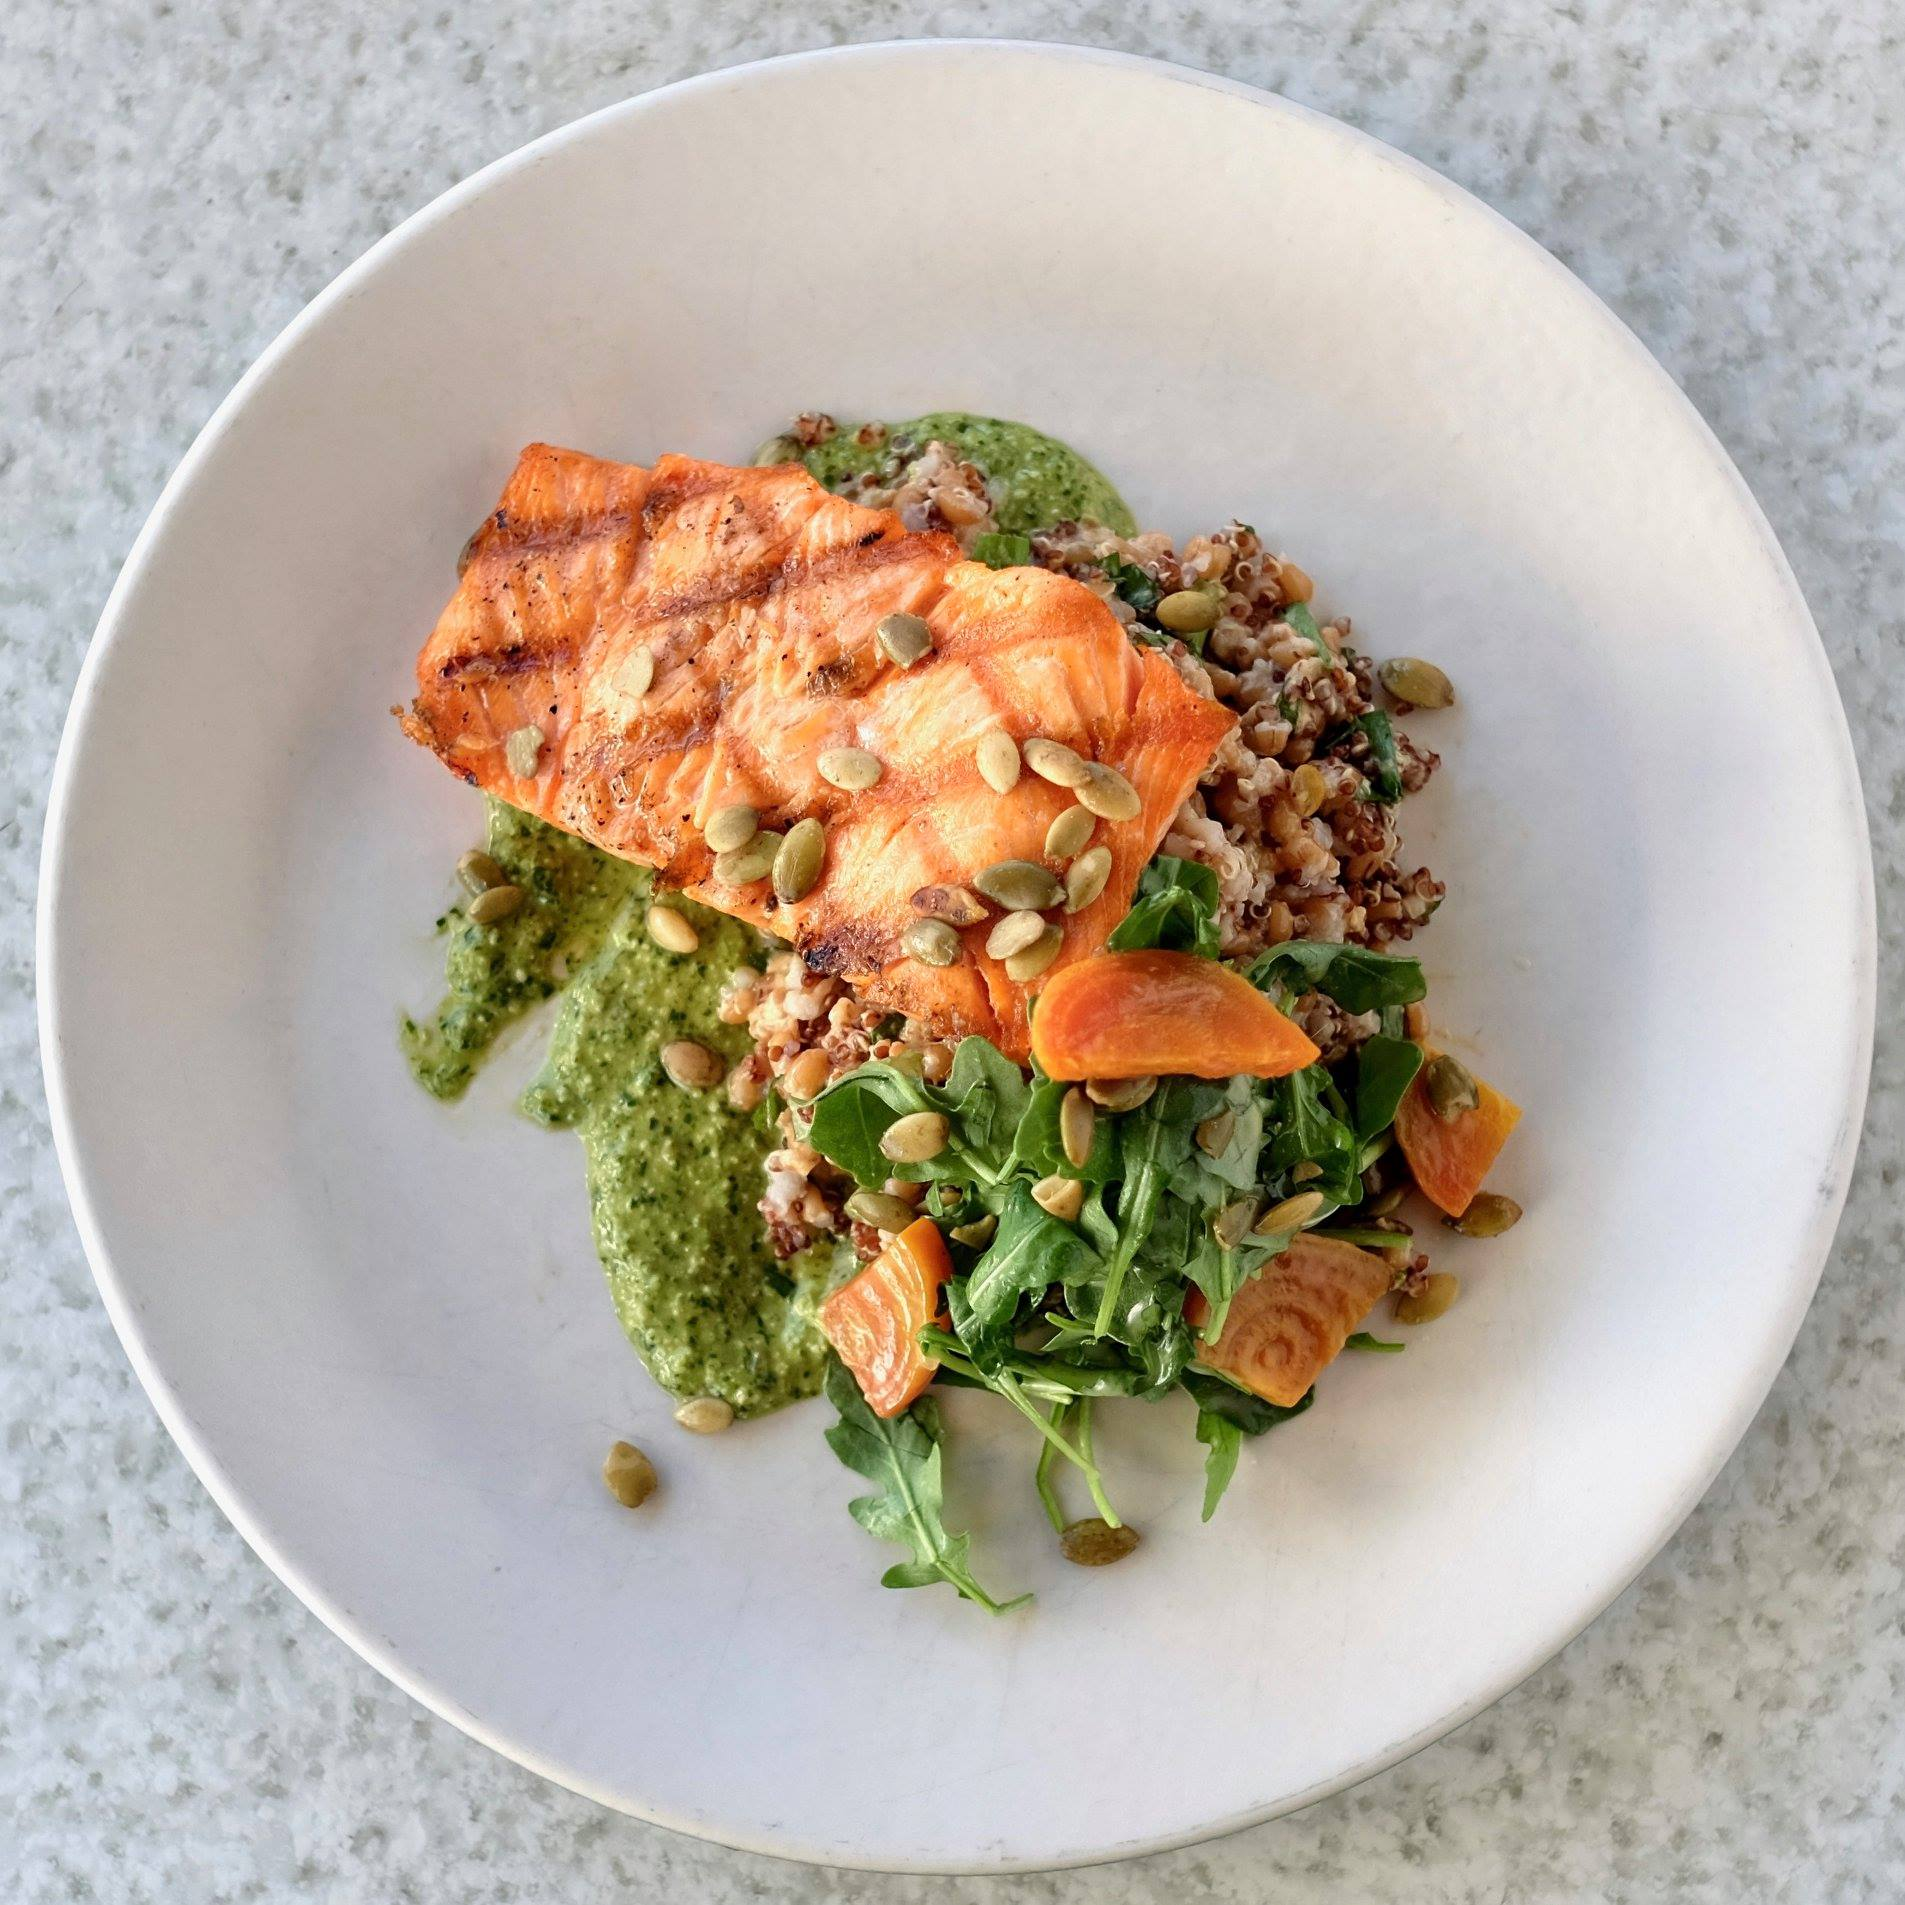 True Food Kitchen Brings Its 'Anti-Inflammatory' Menu to Alpharetta Next Month